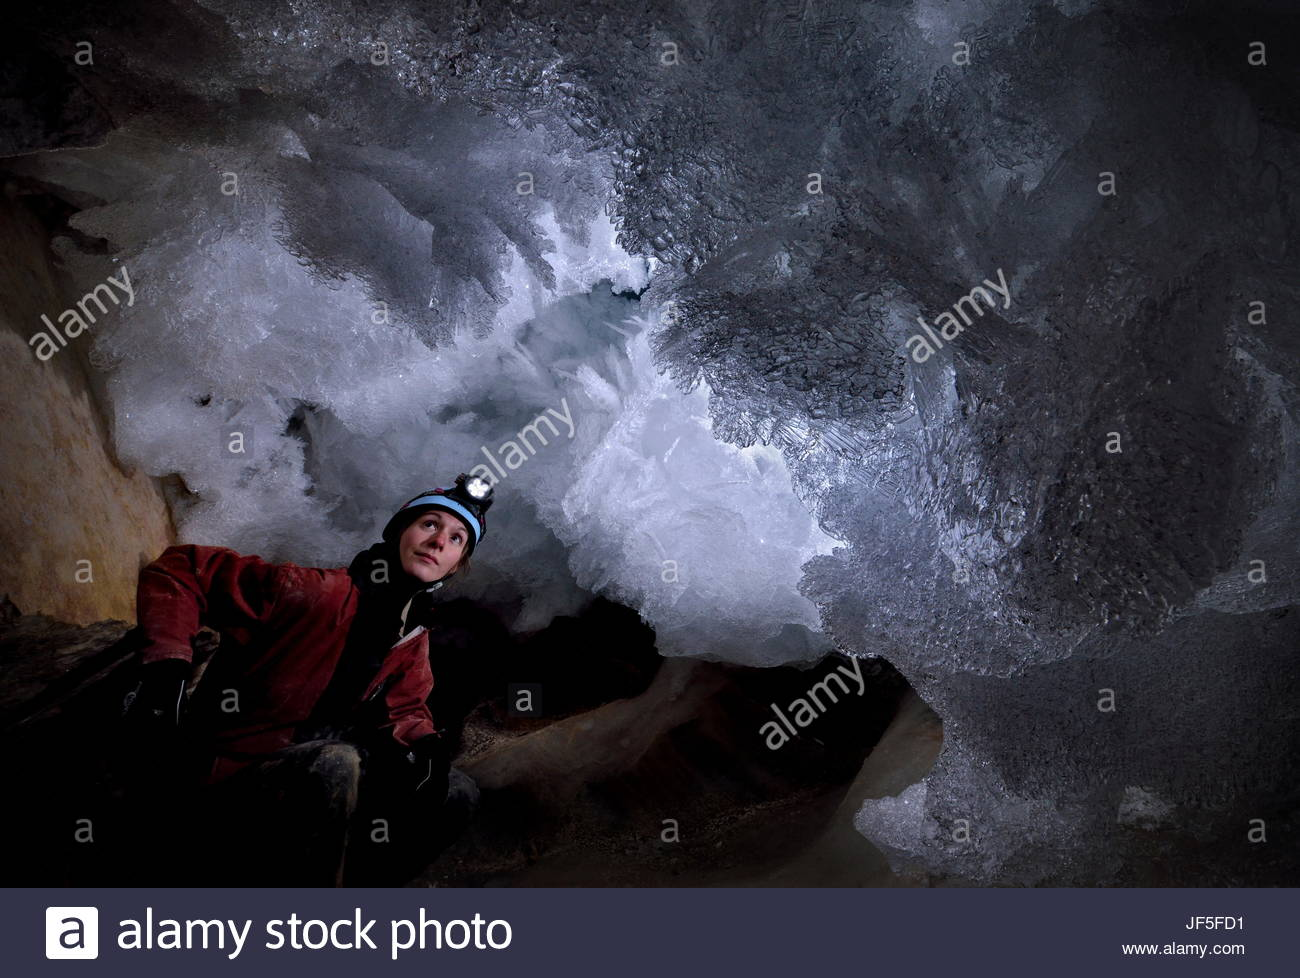 A scientist dates the cryogenic cave carbonates and examines the delicate frost crystals in the roof of a tiny grotto - Stock Image